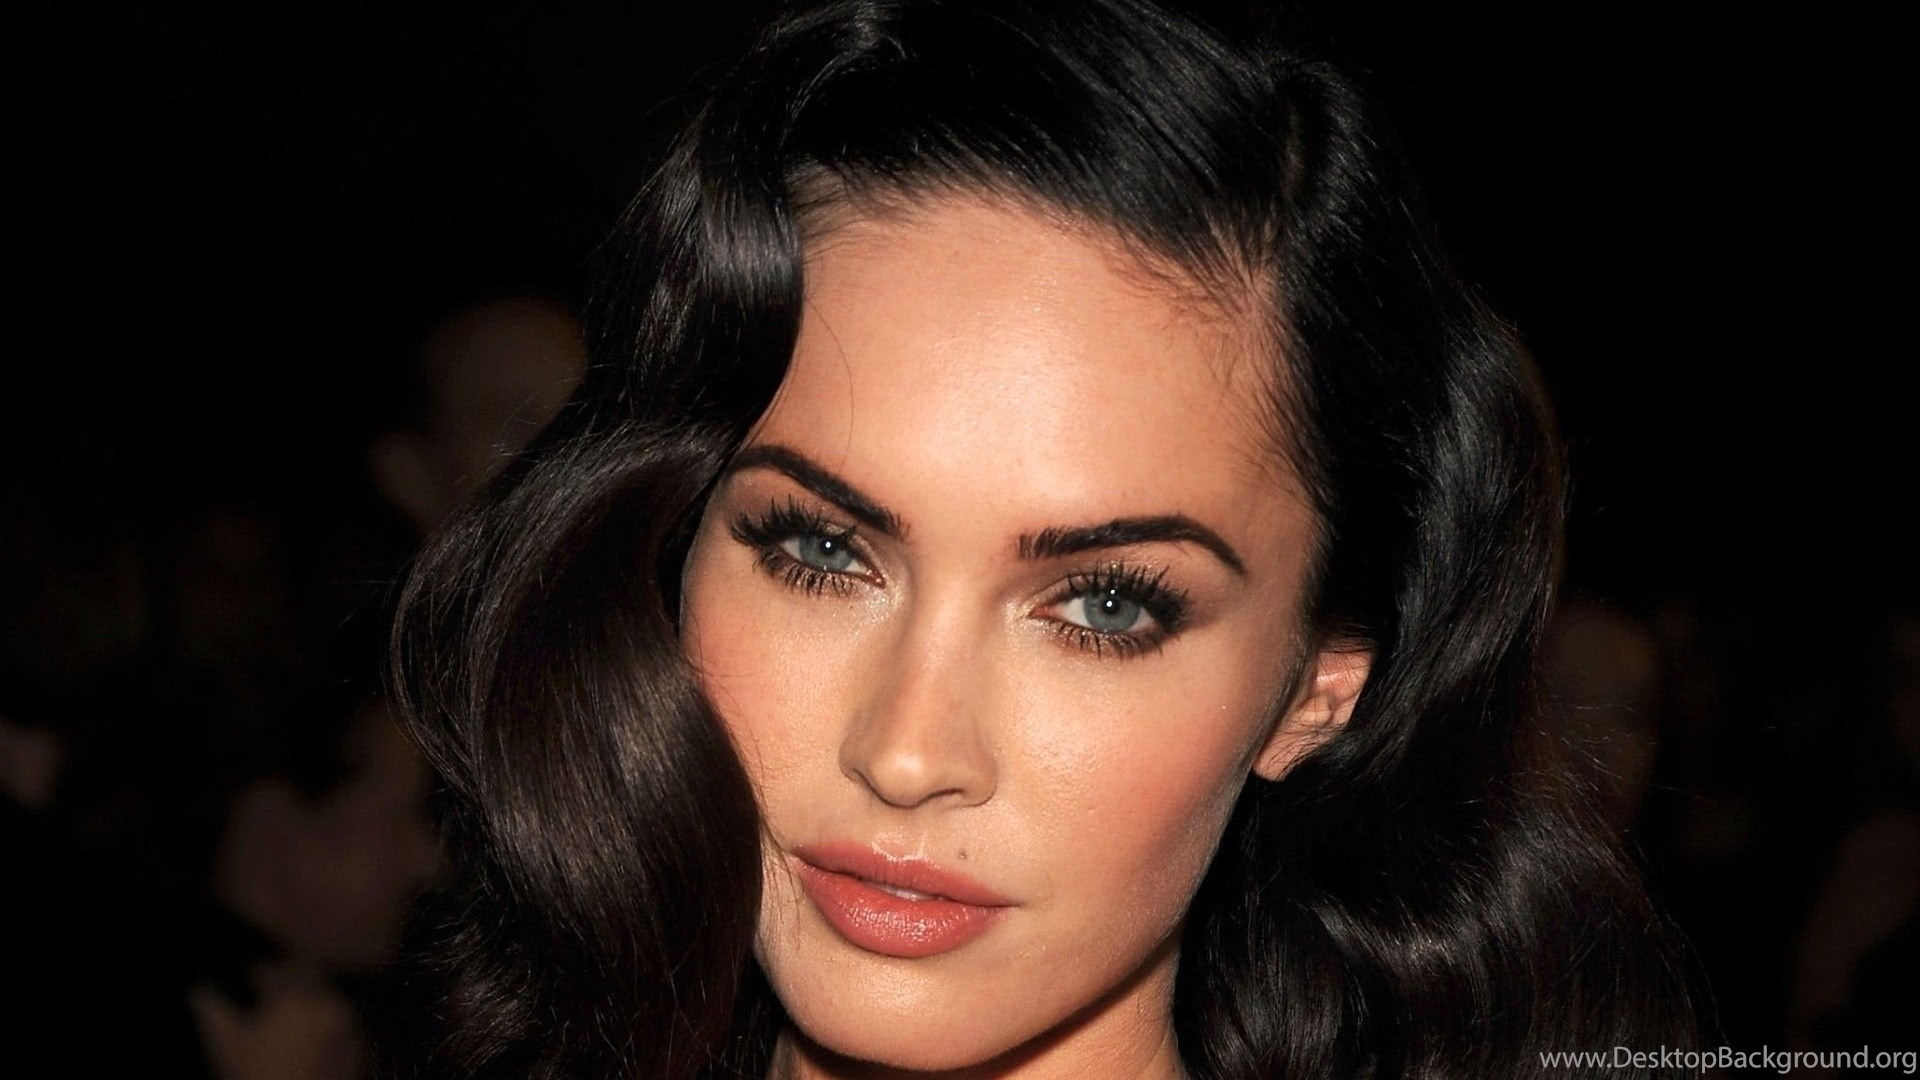 megan fox hd wallpapers desktop background